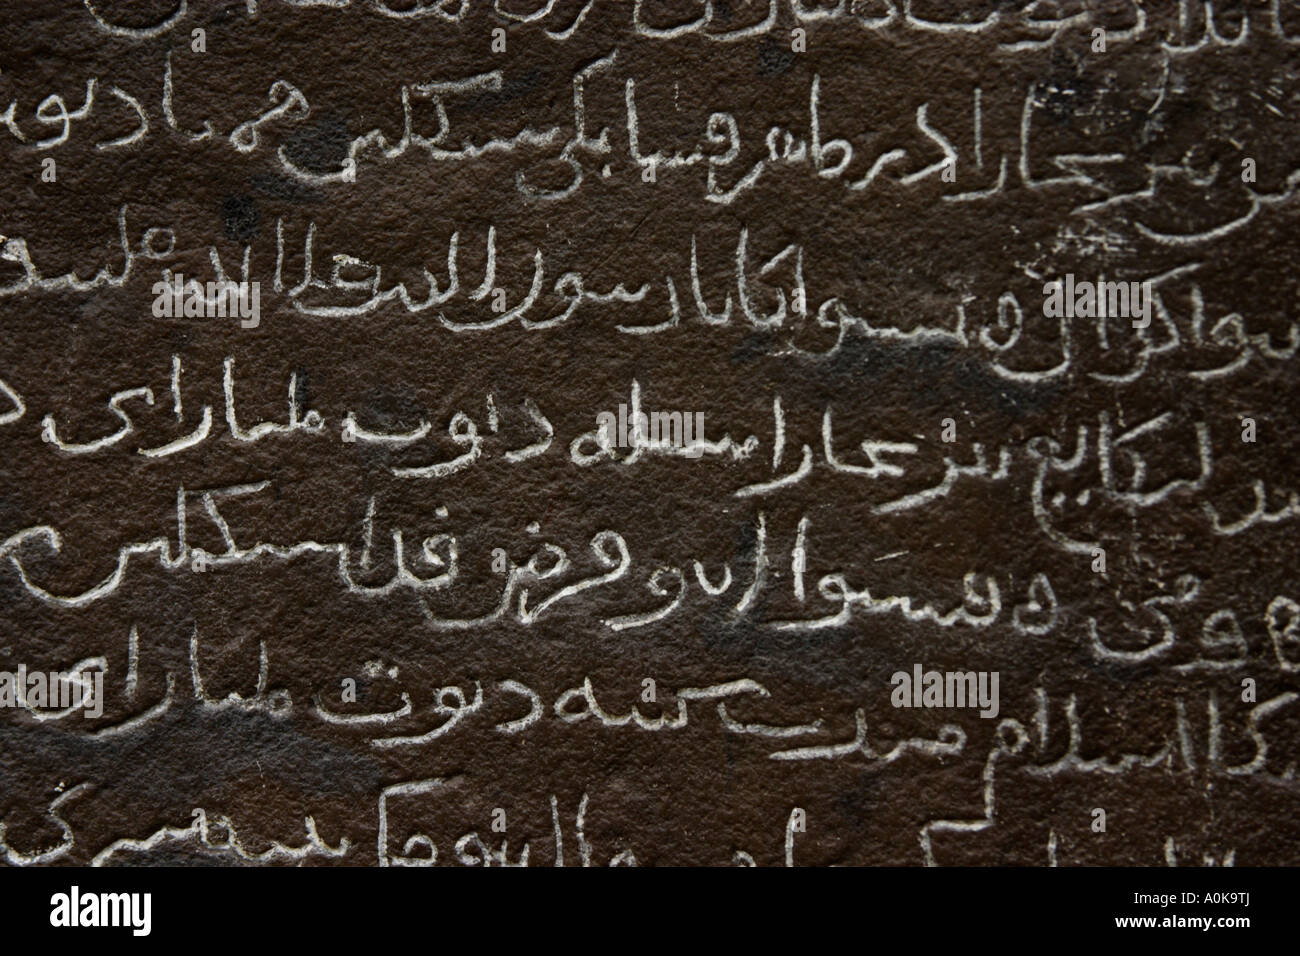 jawi or arabic letters written on stone - Stock Image